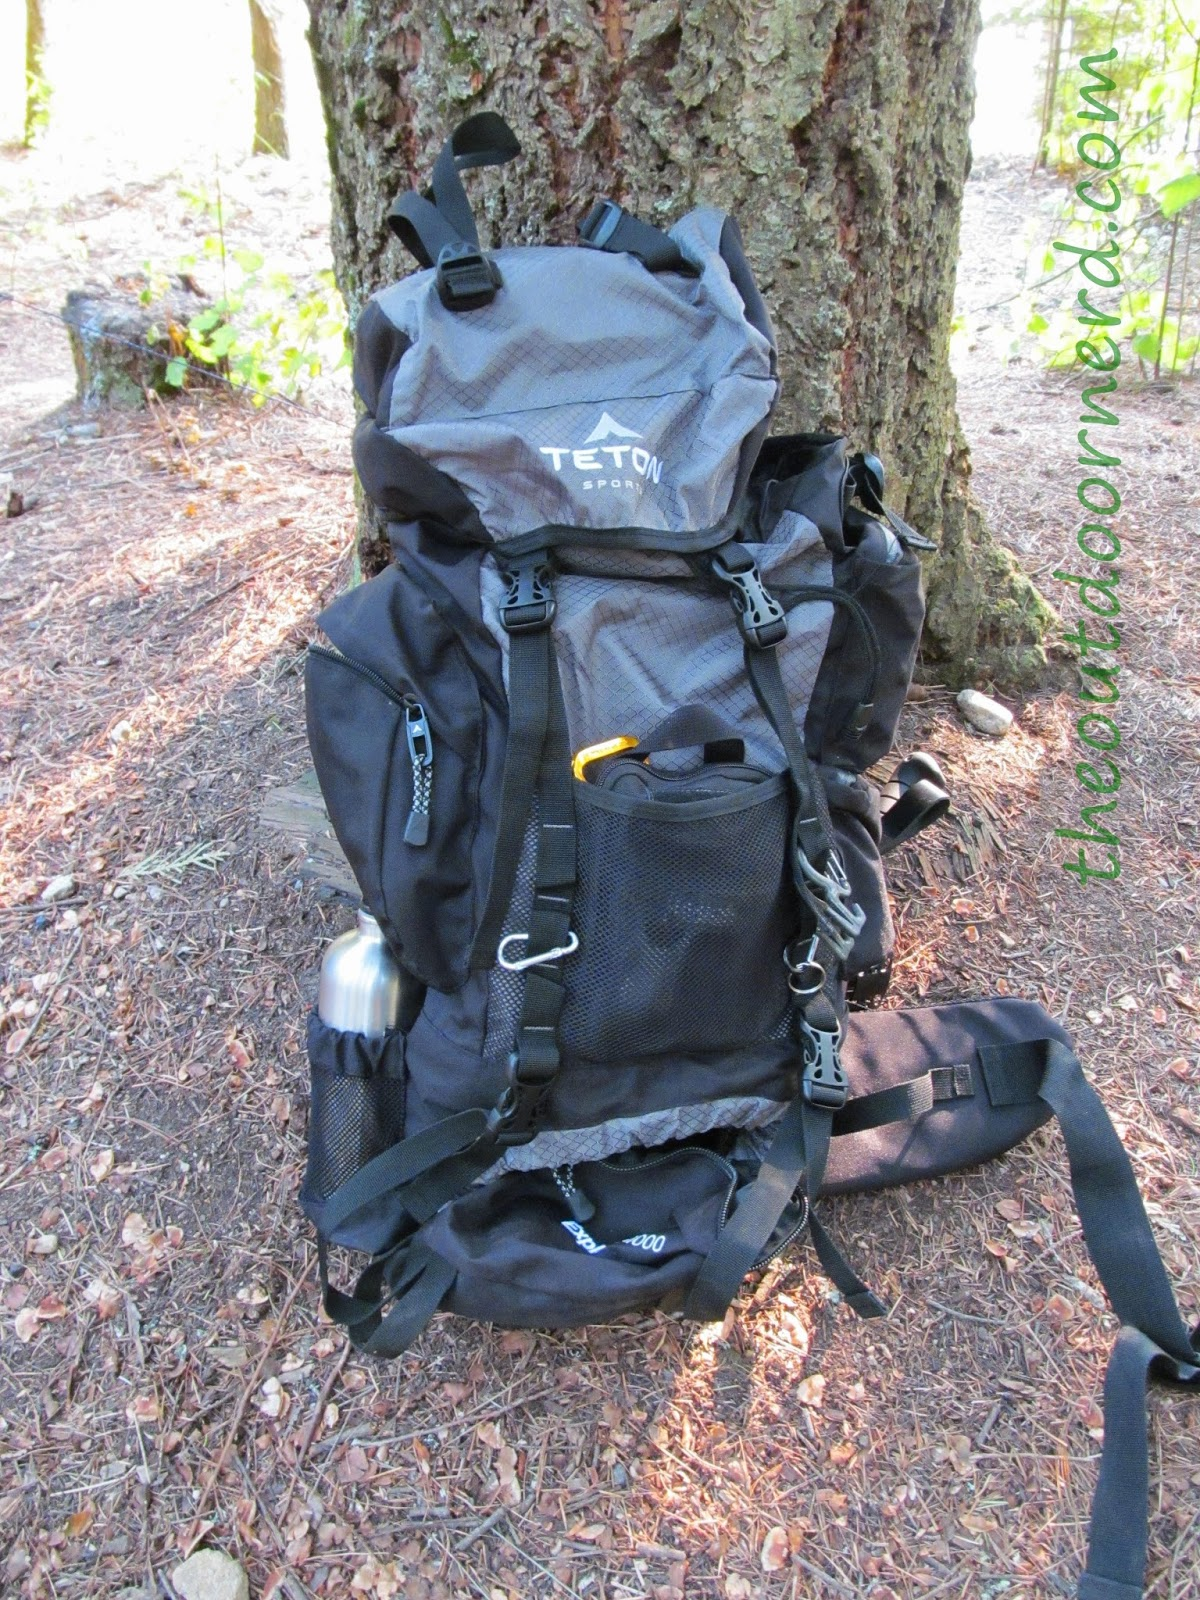 Teton Explorer 4000 Hiking Backpack